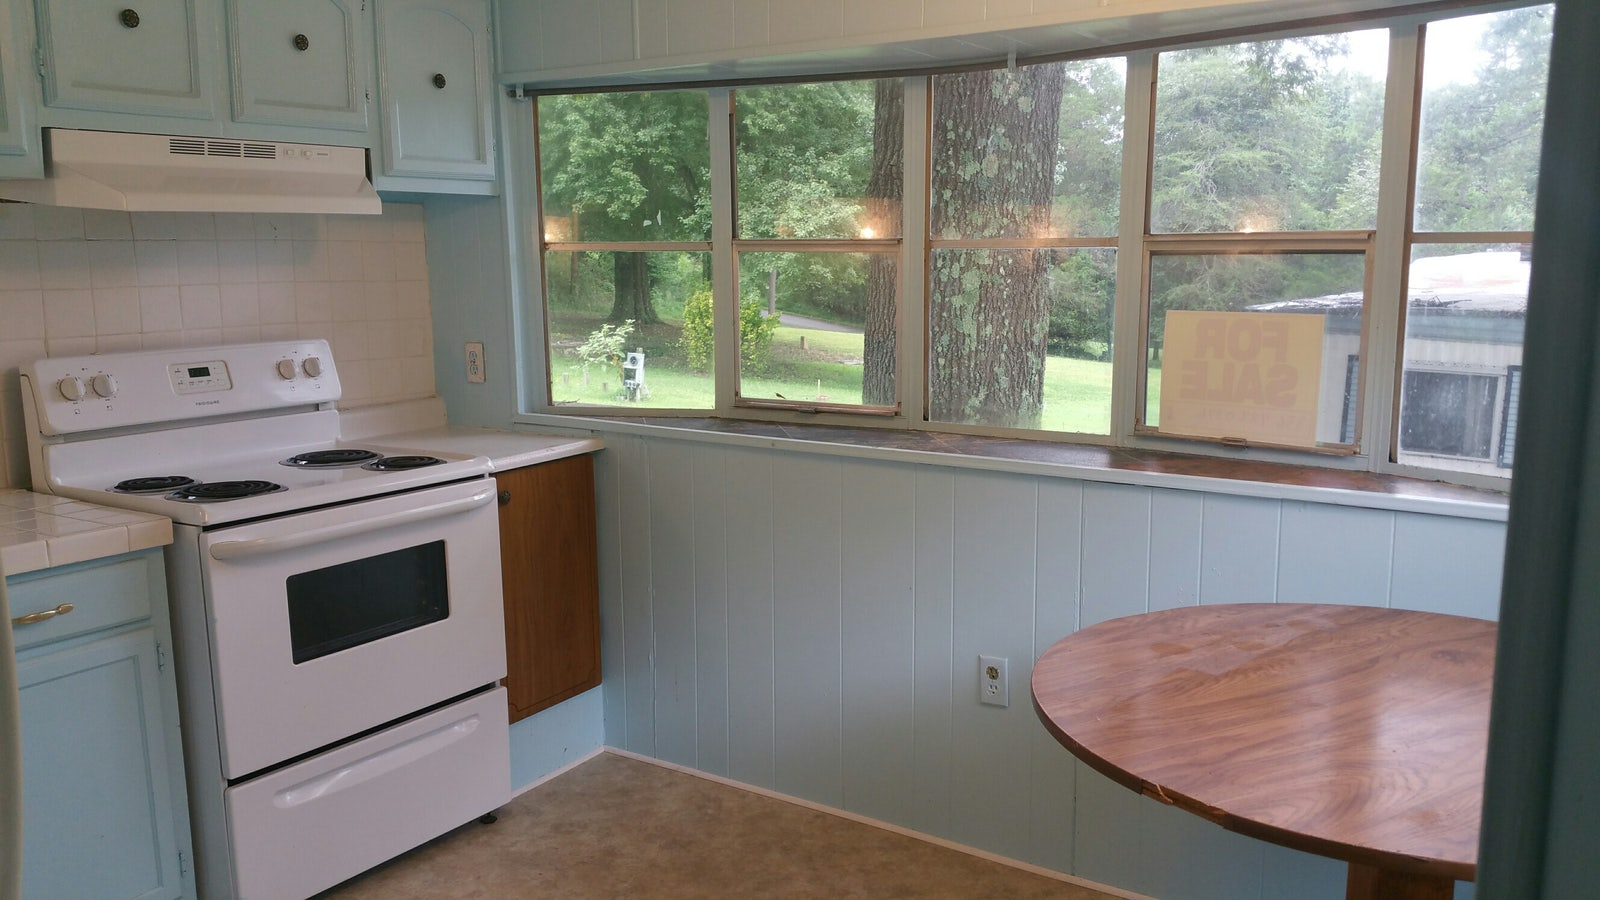 Refurbished mobile home for sale on rented lot | Apply | Cozy on 18x80 mobile home, 12x30 mobile home, 12x80 mobile home, 18x60 mobile home, 12 x 55 mobile home, 10x30 mobile home, pre-made deck for mobile home, adding garage to mobile home, 1975 mobile home, 10x40 mobile home, 18 x 60 mobile home, 12x40 mobile home, 97 single wide mobile home, 14x48 mobile home, 12x20 mobile home, 16x60 mobile home, atomic mobile home, basement under mobile home, 1969 mobile home, 12x70 mobile home,